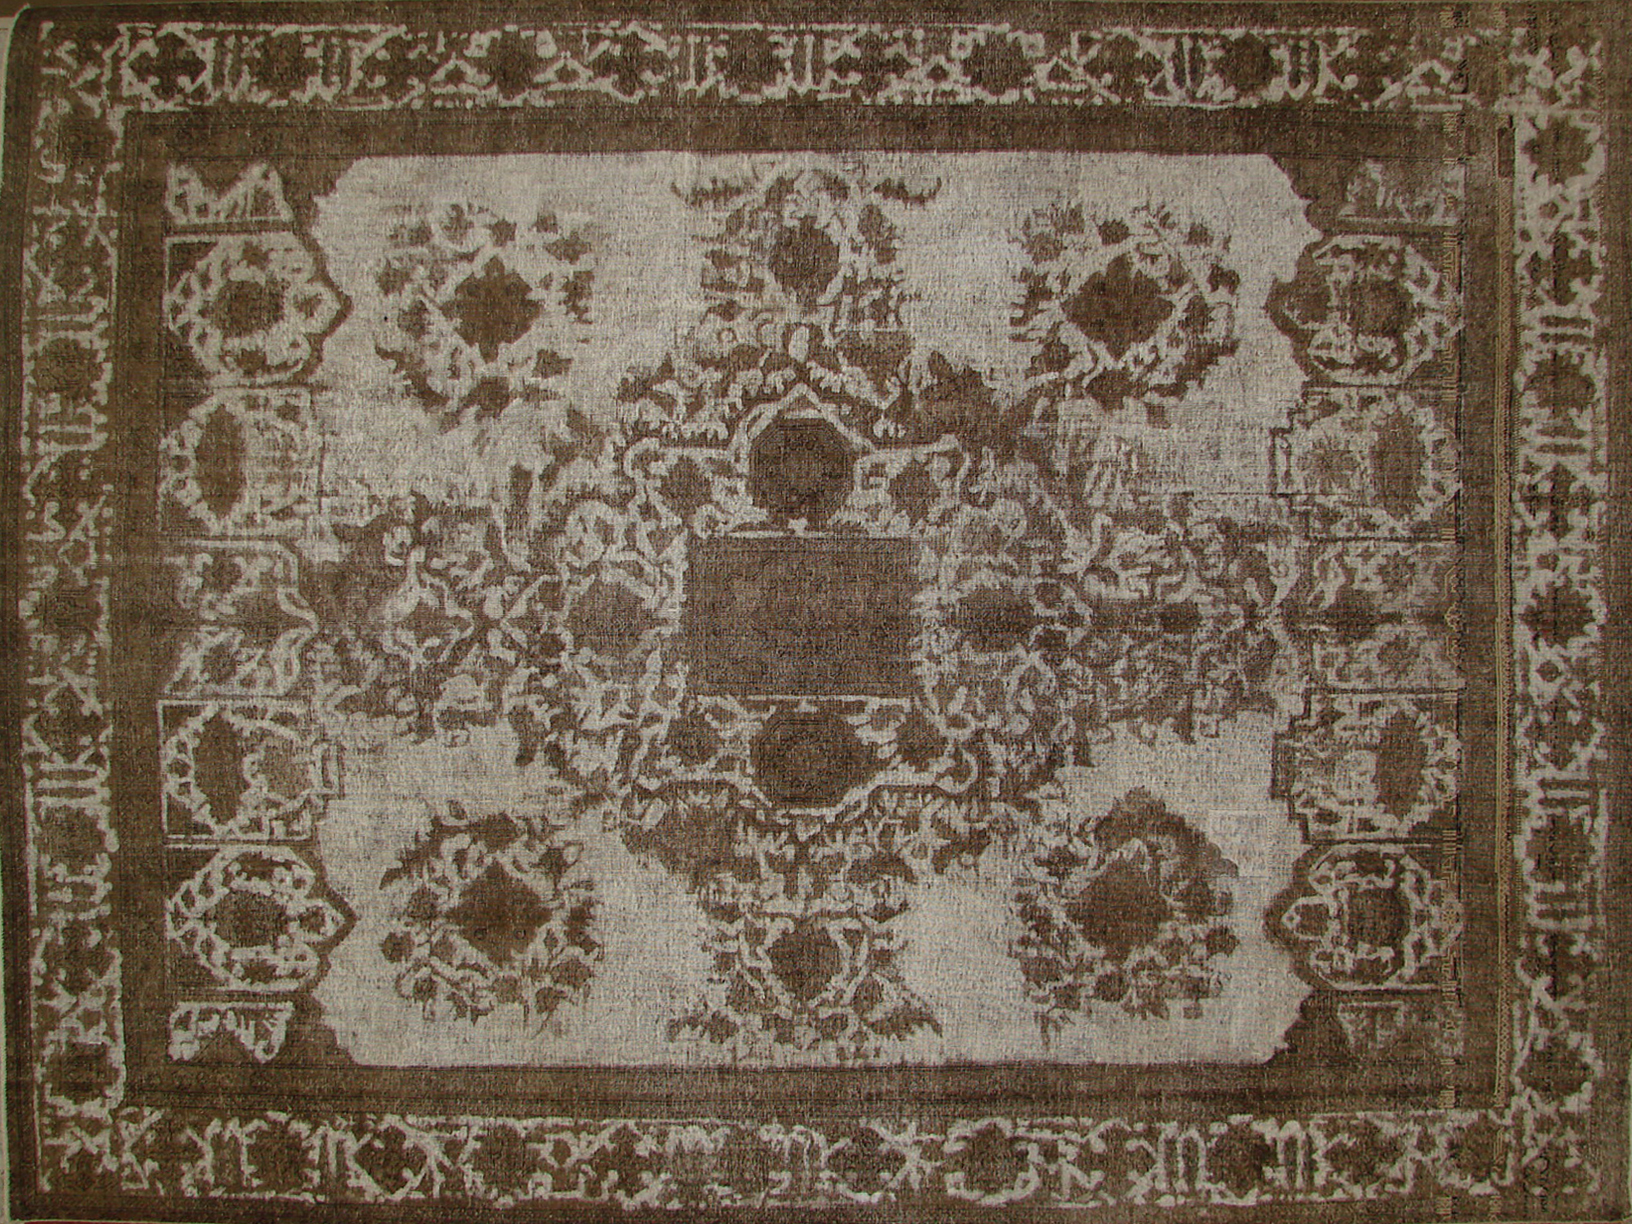 9x12 Vintage Hand Knotted Wool Area Rug - MR19271